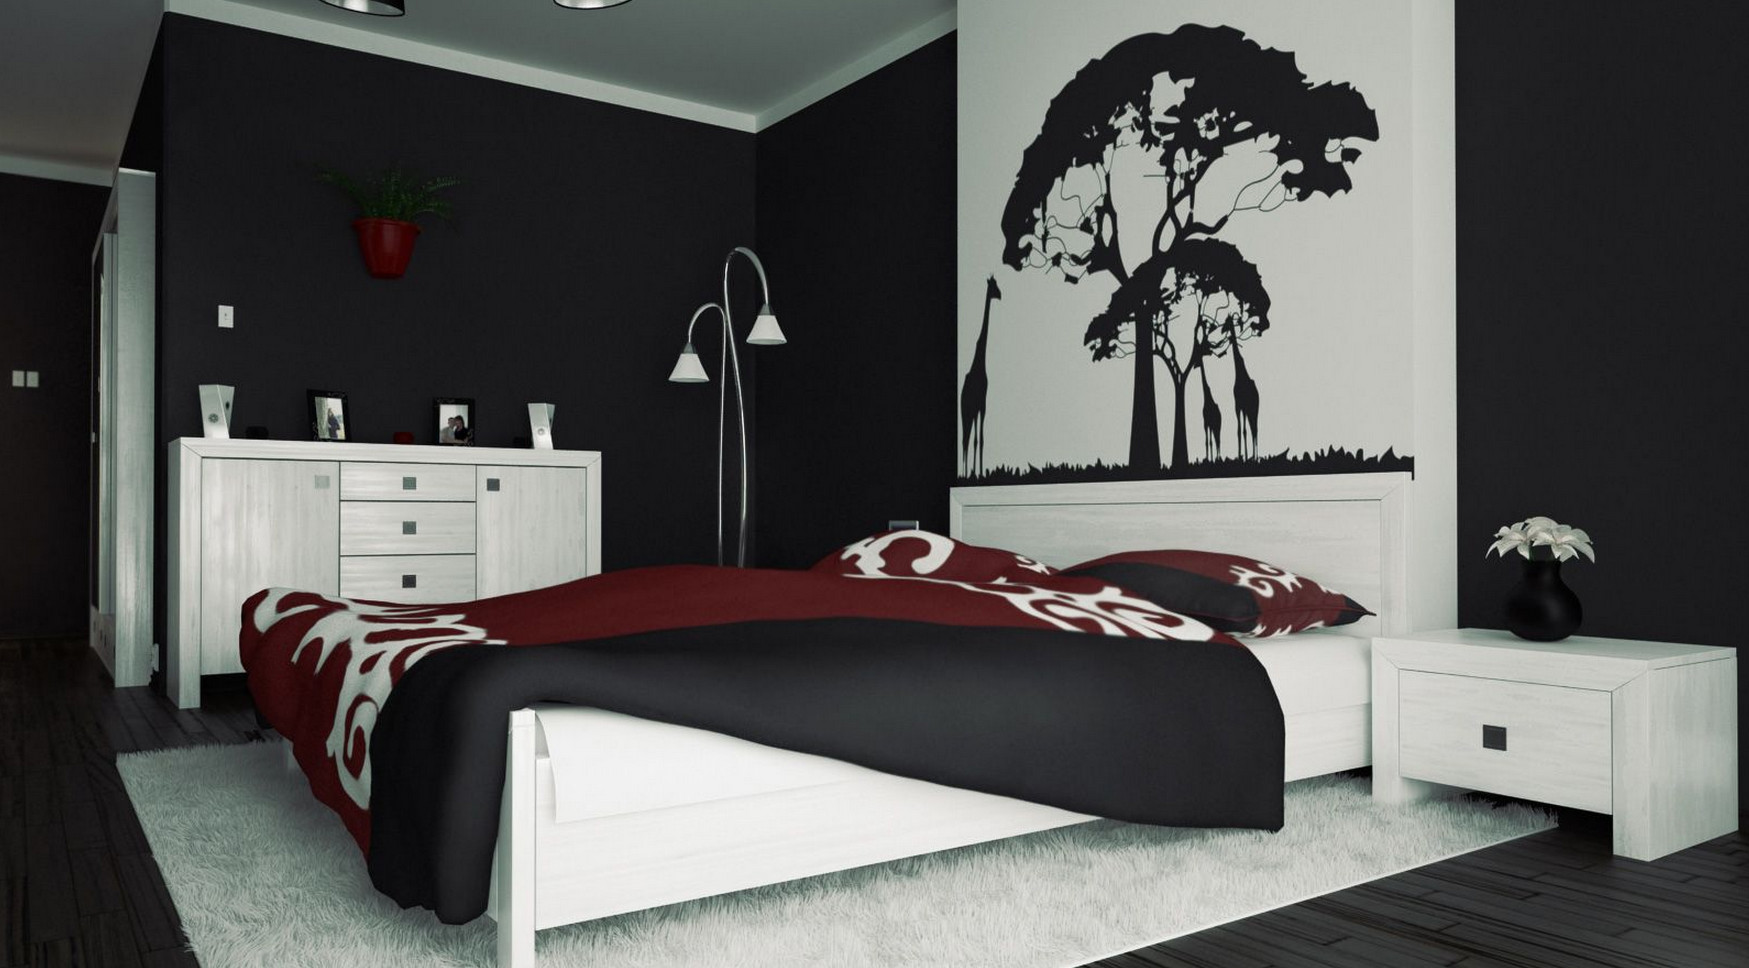 Black Wall Design Ideas : Red and black wall painting ideas interesting for home